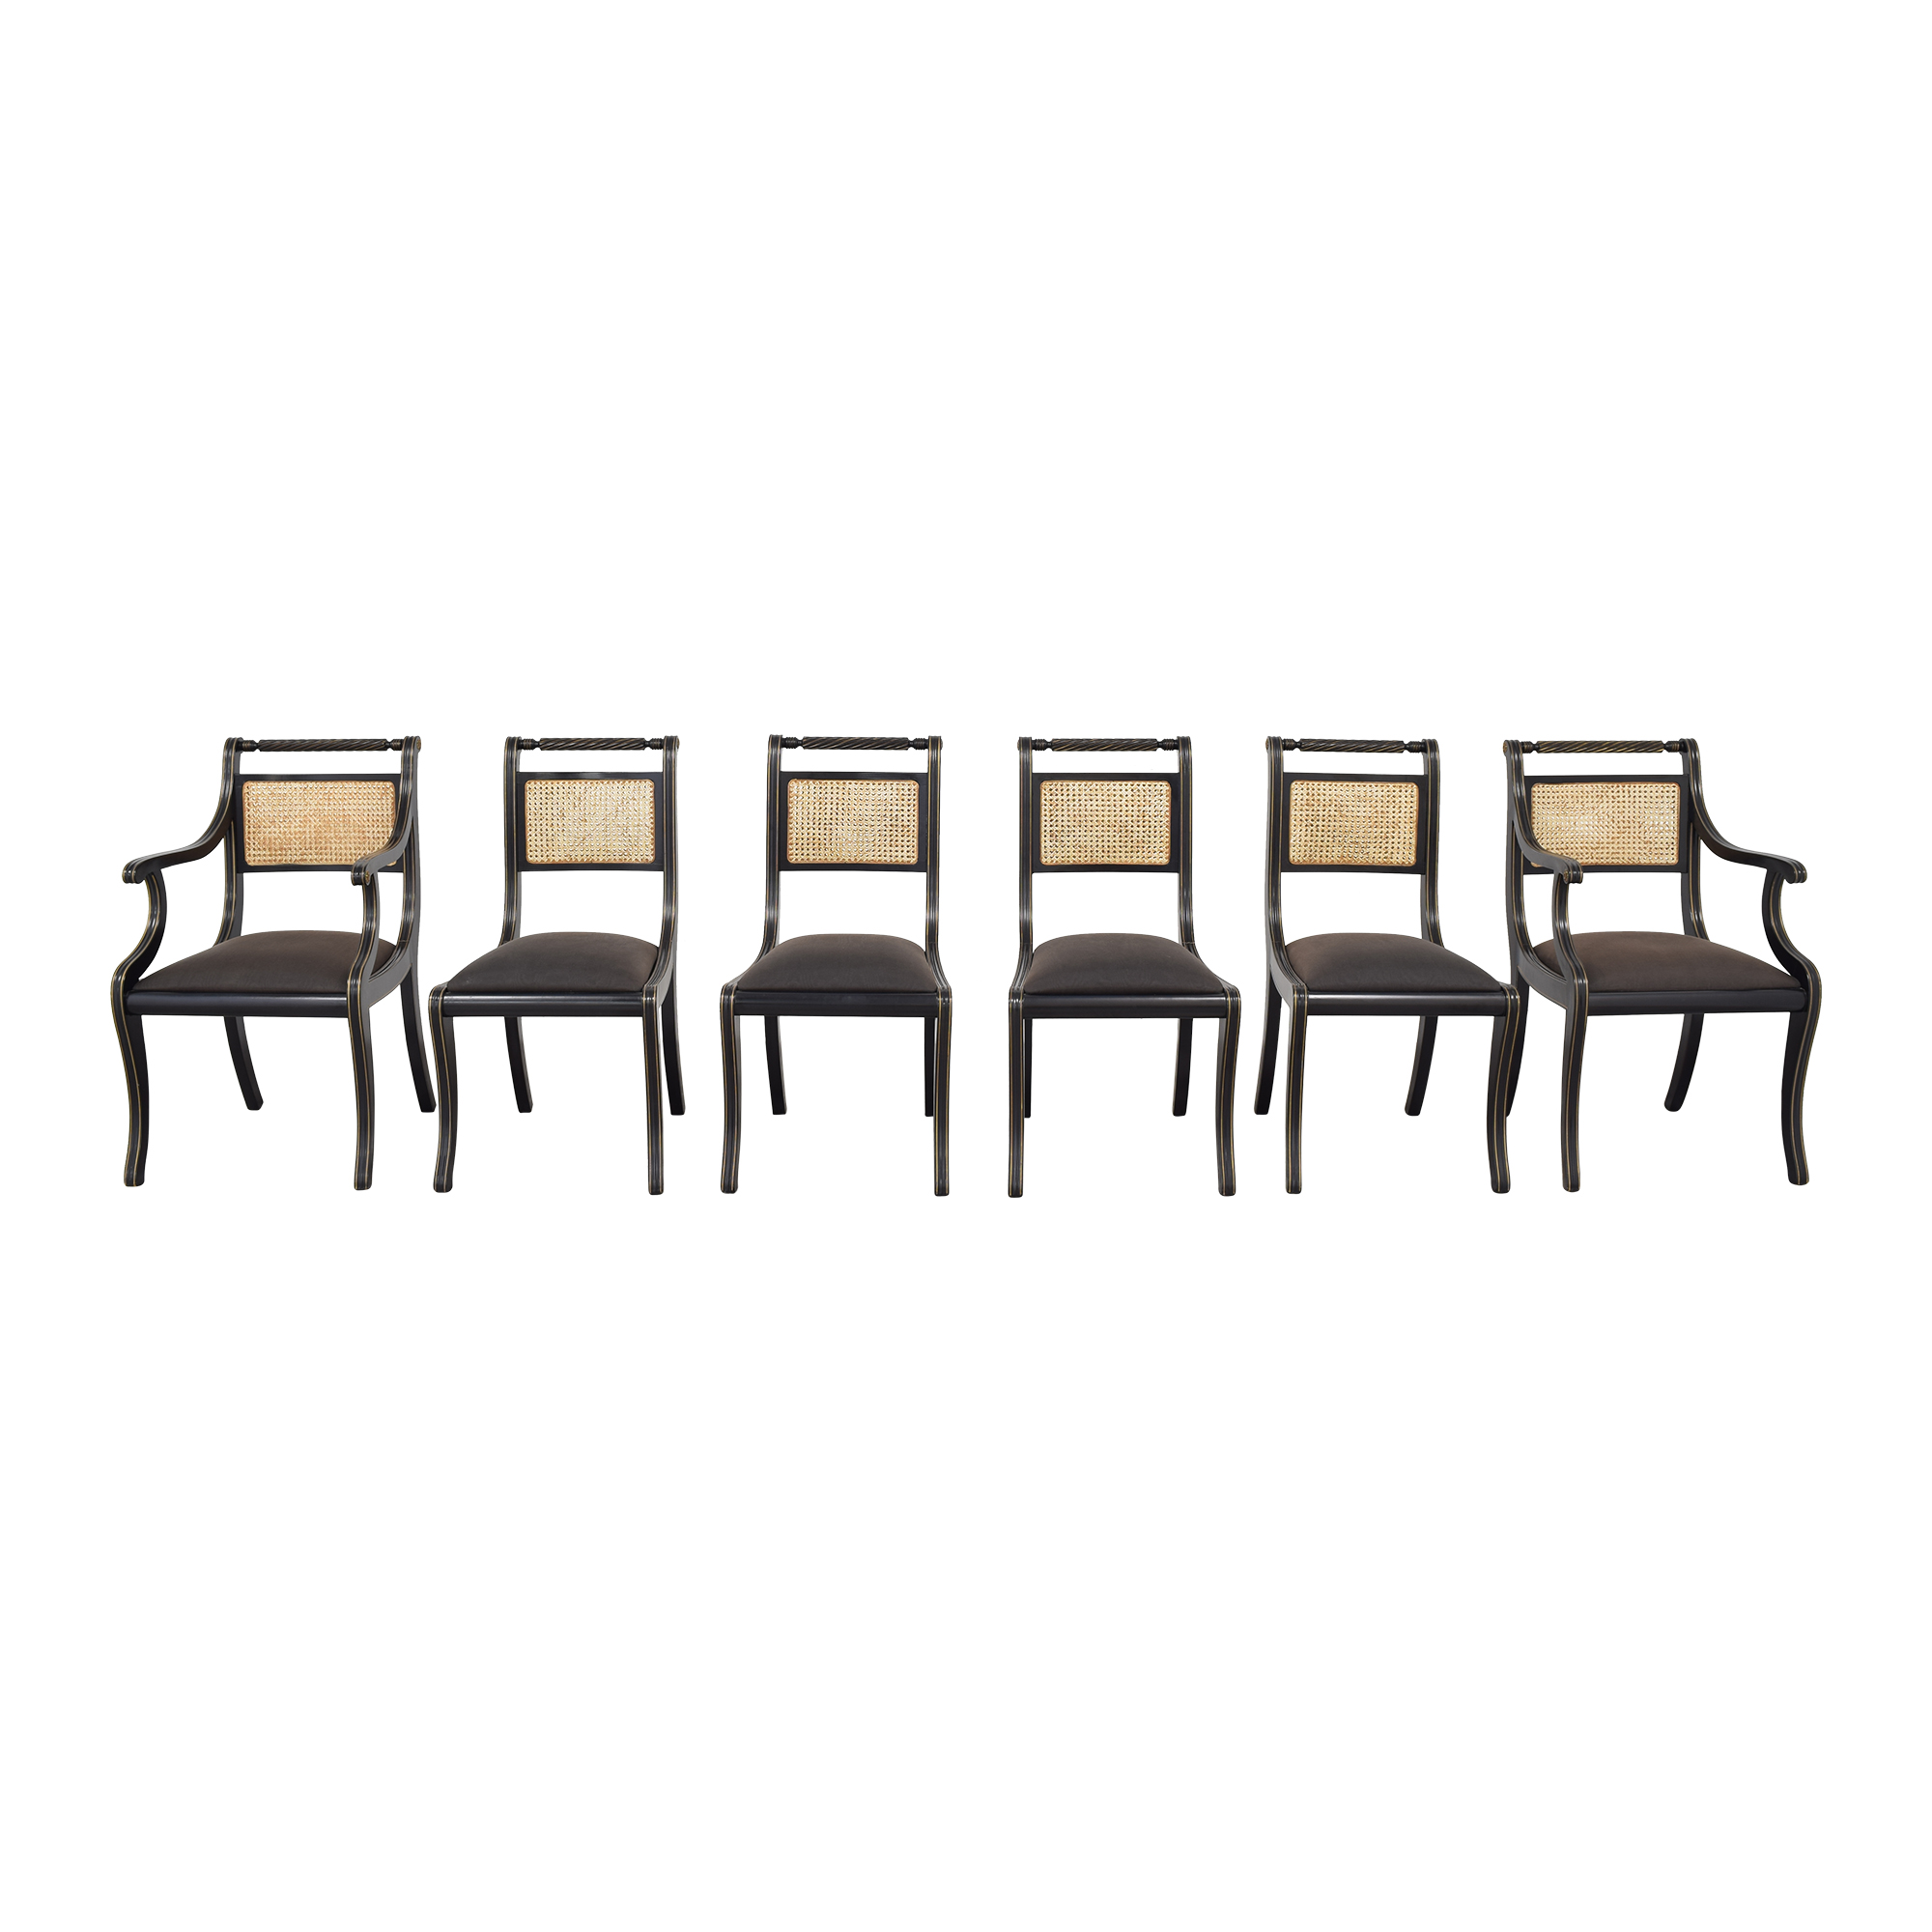 shop Bloomingdale's Bloomingdale's Italian Cane Back Dining Chairs online